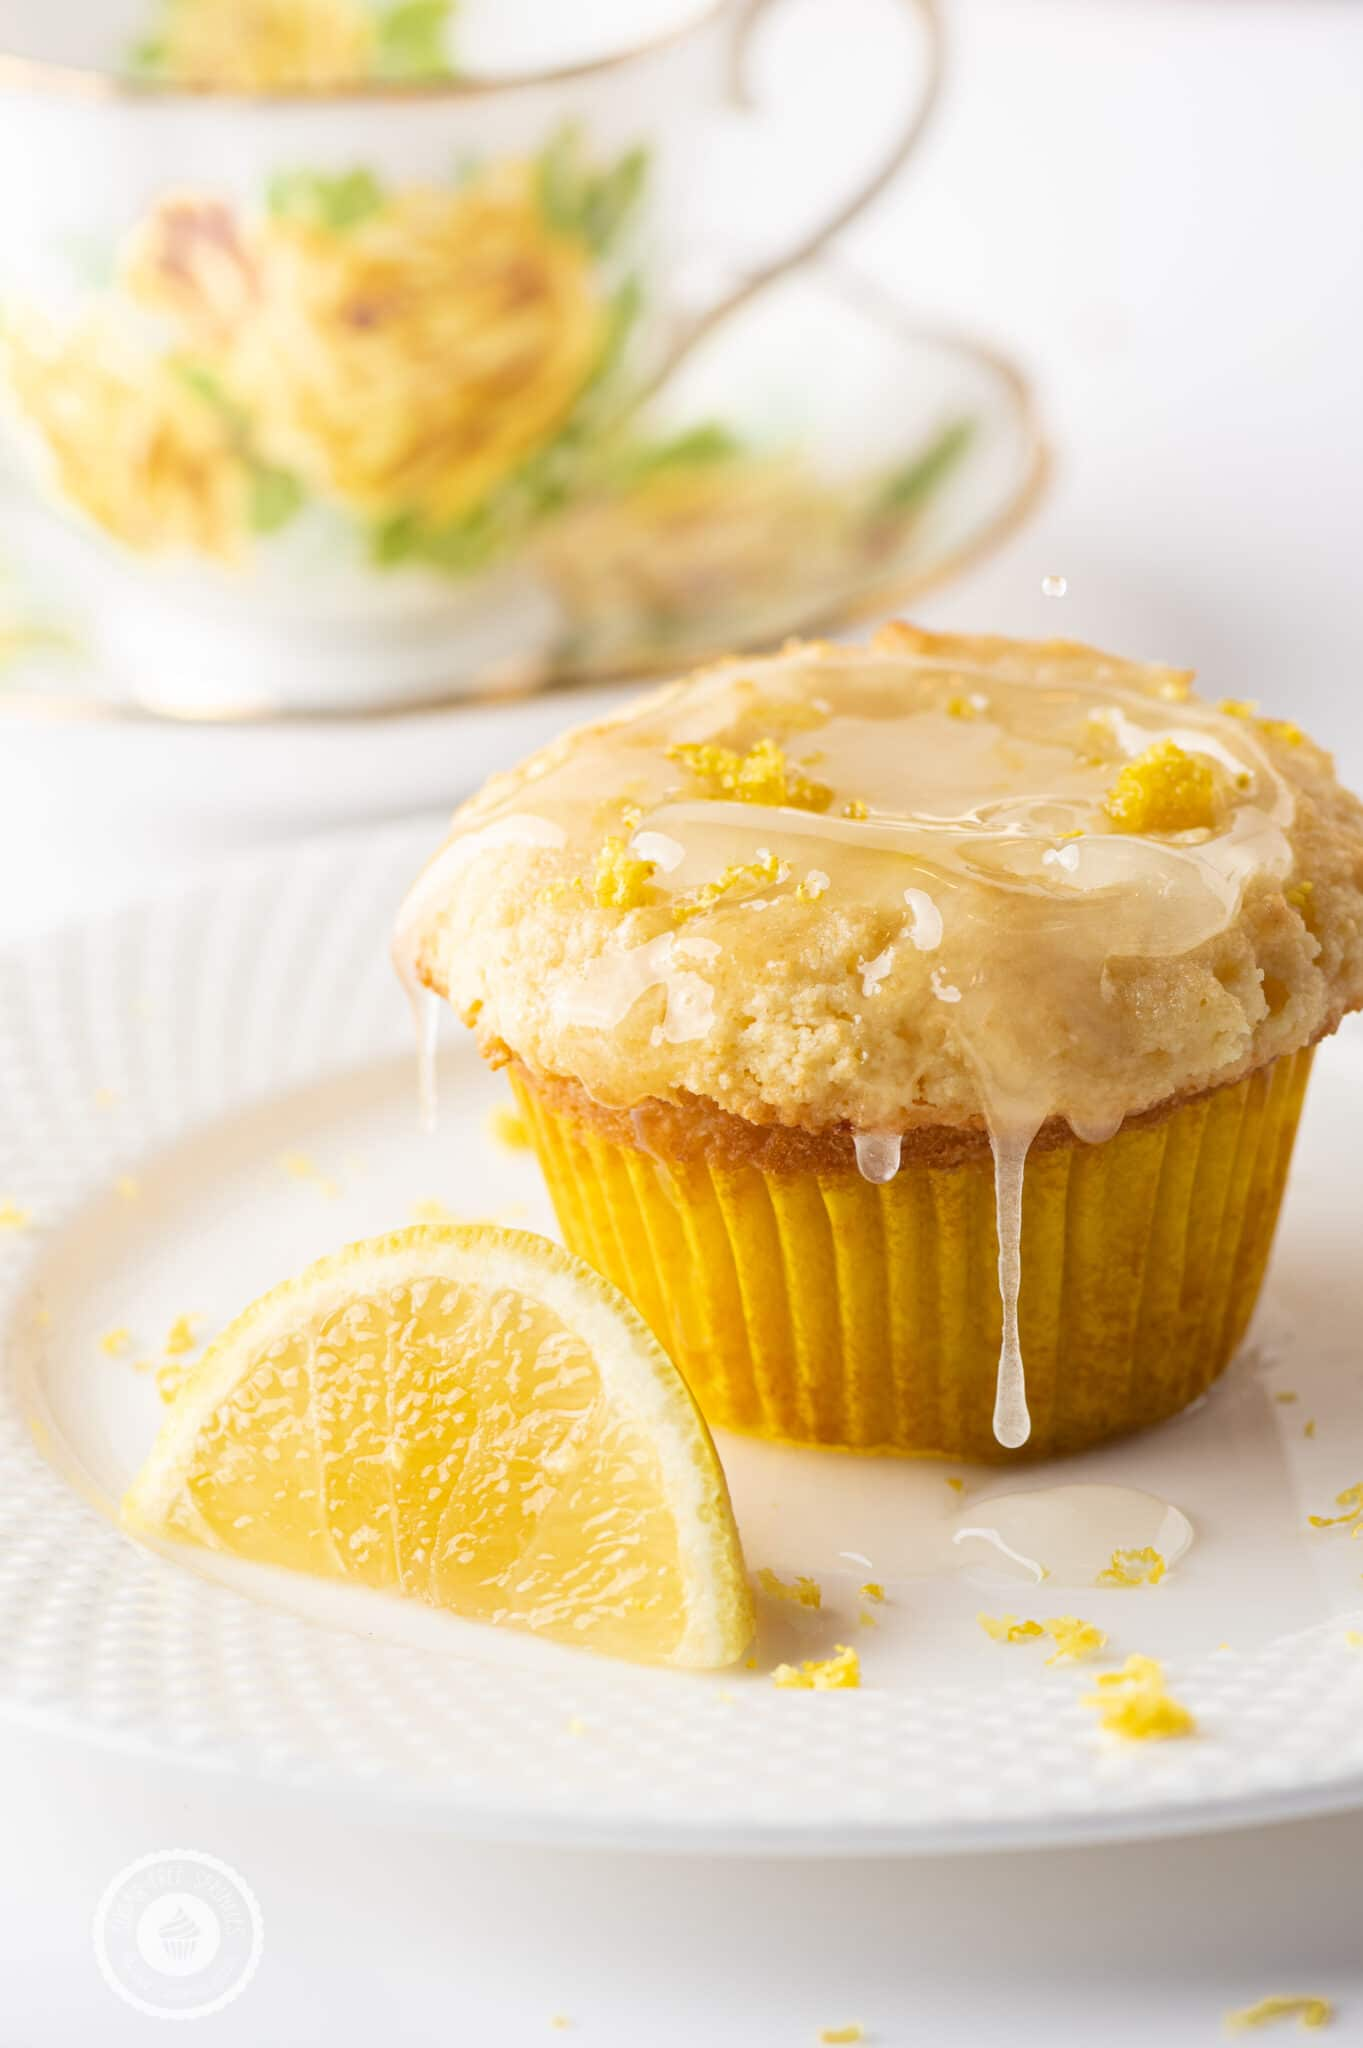 Keto lemon muffin dripping wth sticky lemon glaze on a white plate.  An out of focus yellow rose tea cup is in the background.